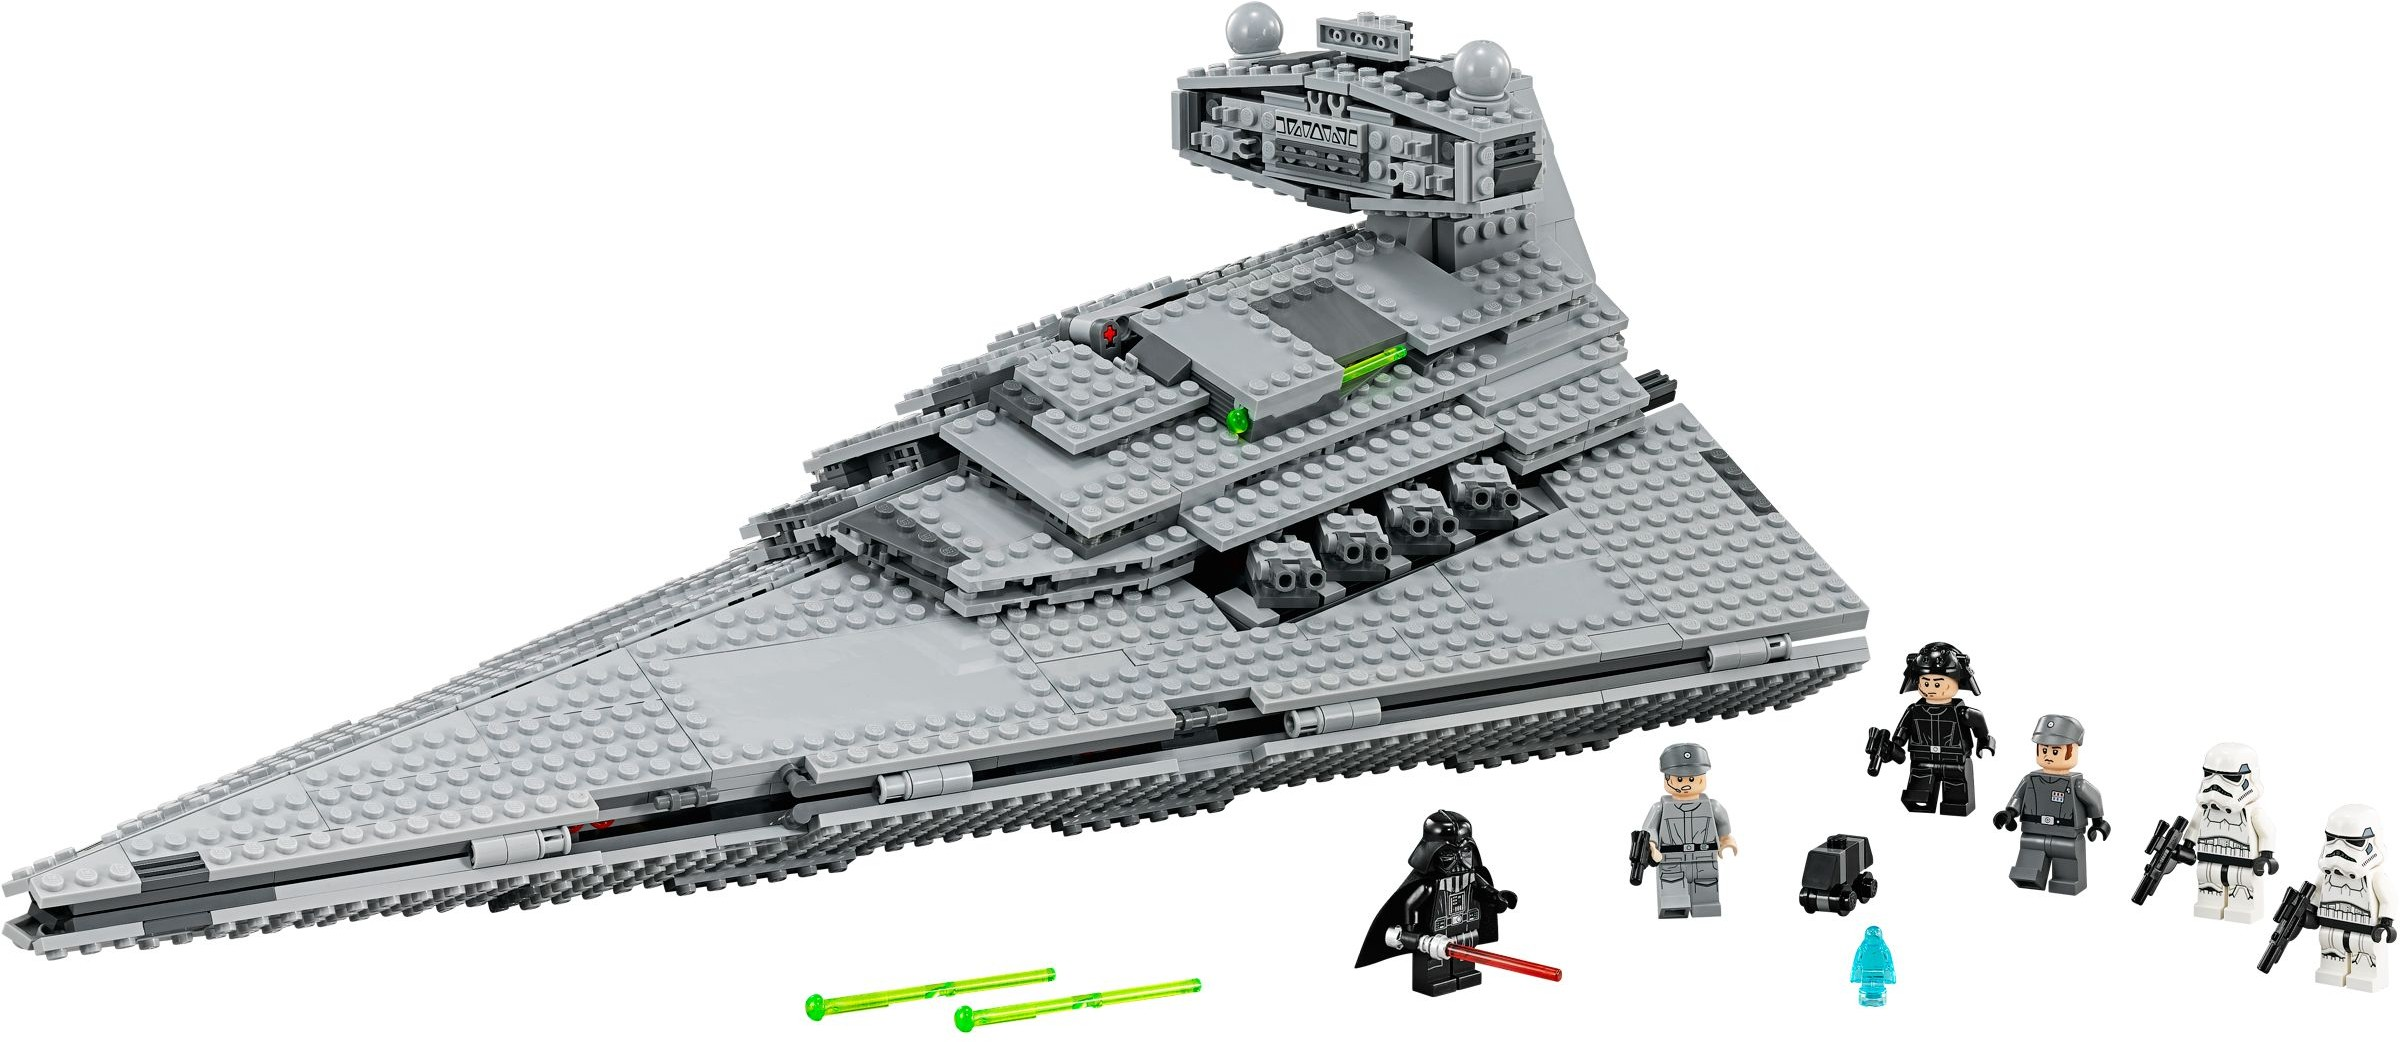 http://images.brickset.com/sets/AdditionalImages/75055-1/75055_main.jpg